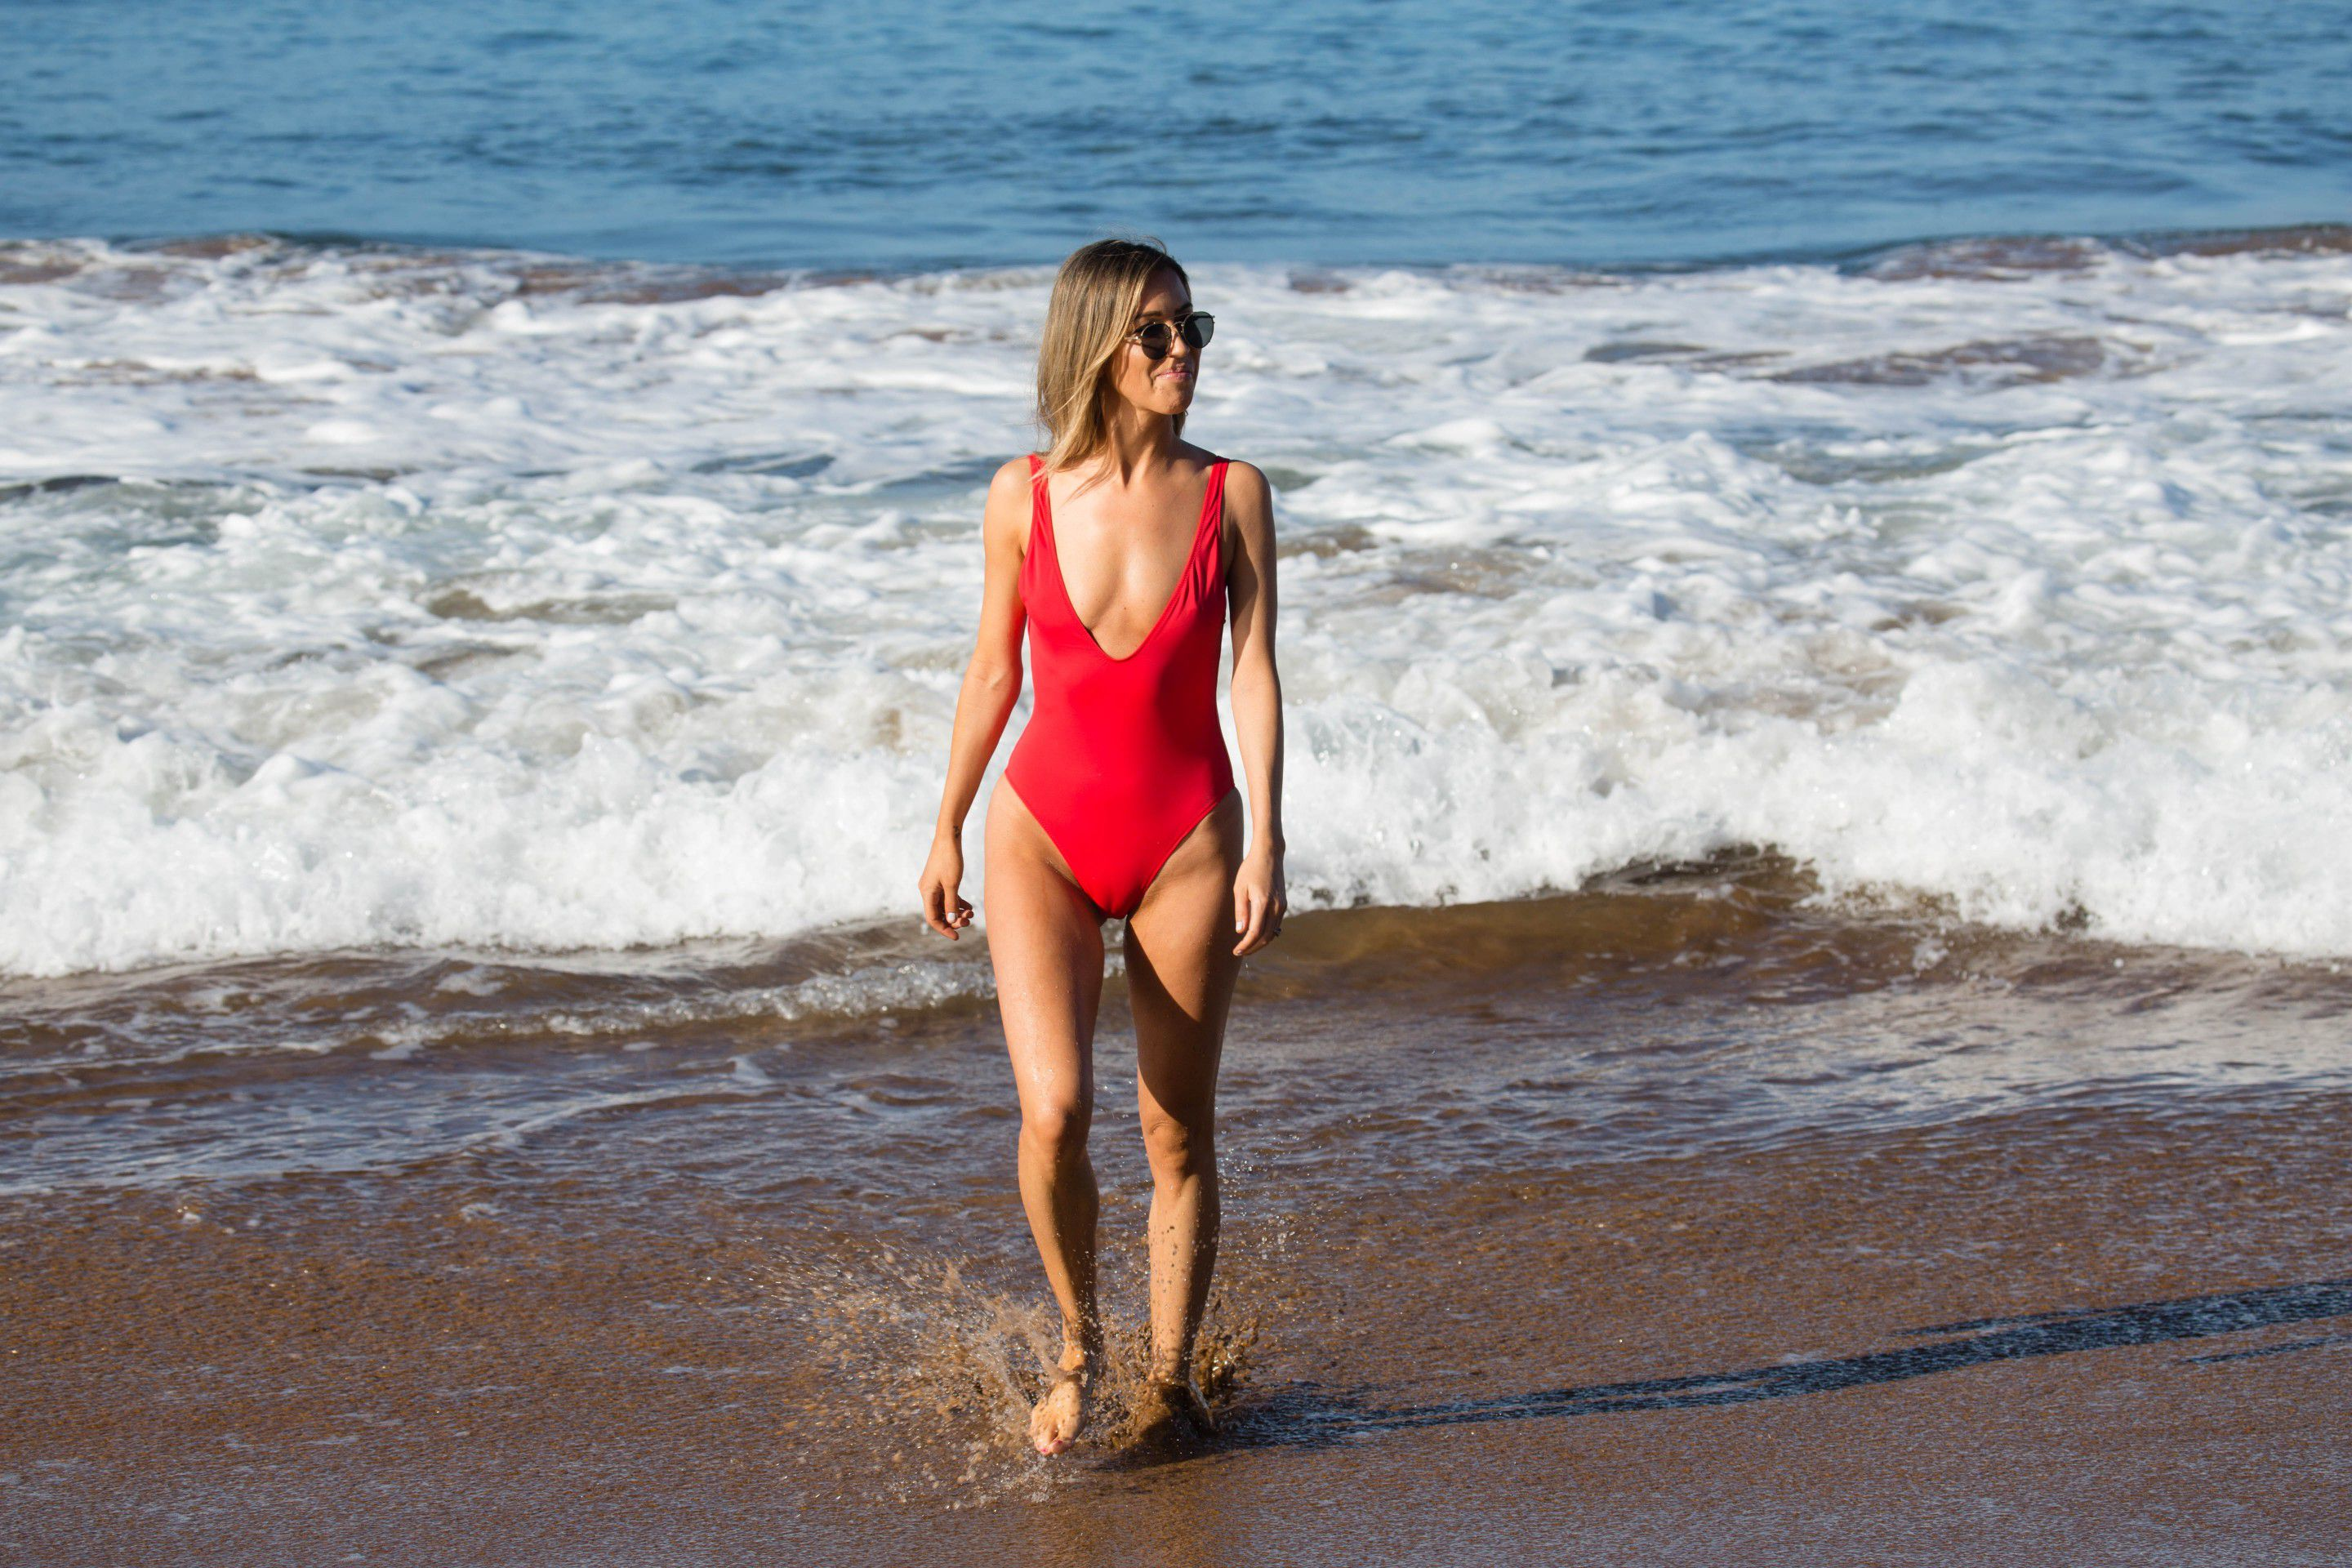 kaitlyn-bristowe-cameltoe-in-red-swimsuit-on-the-beach-in-hawaii-5757